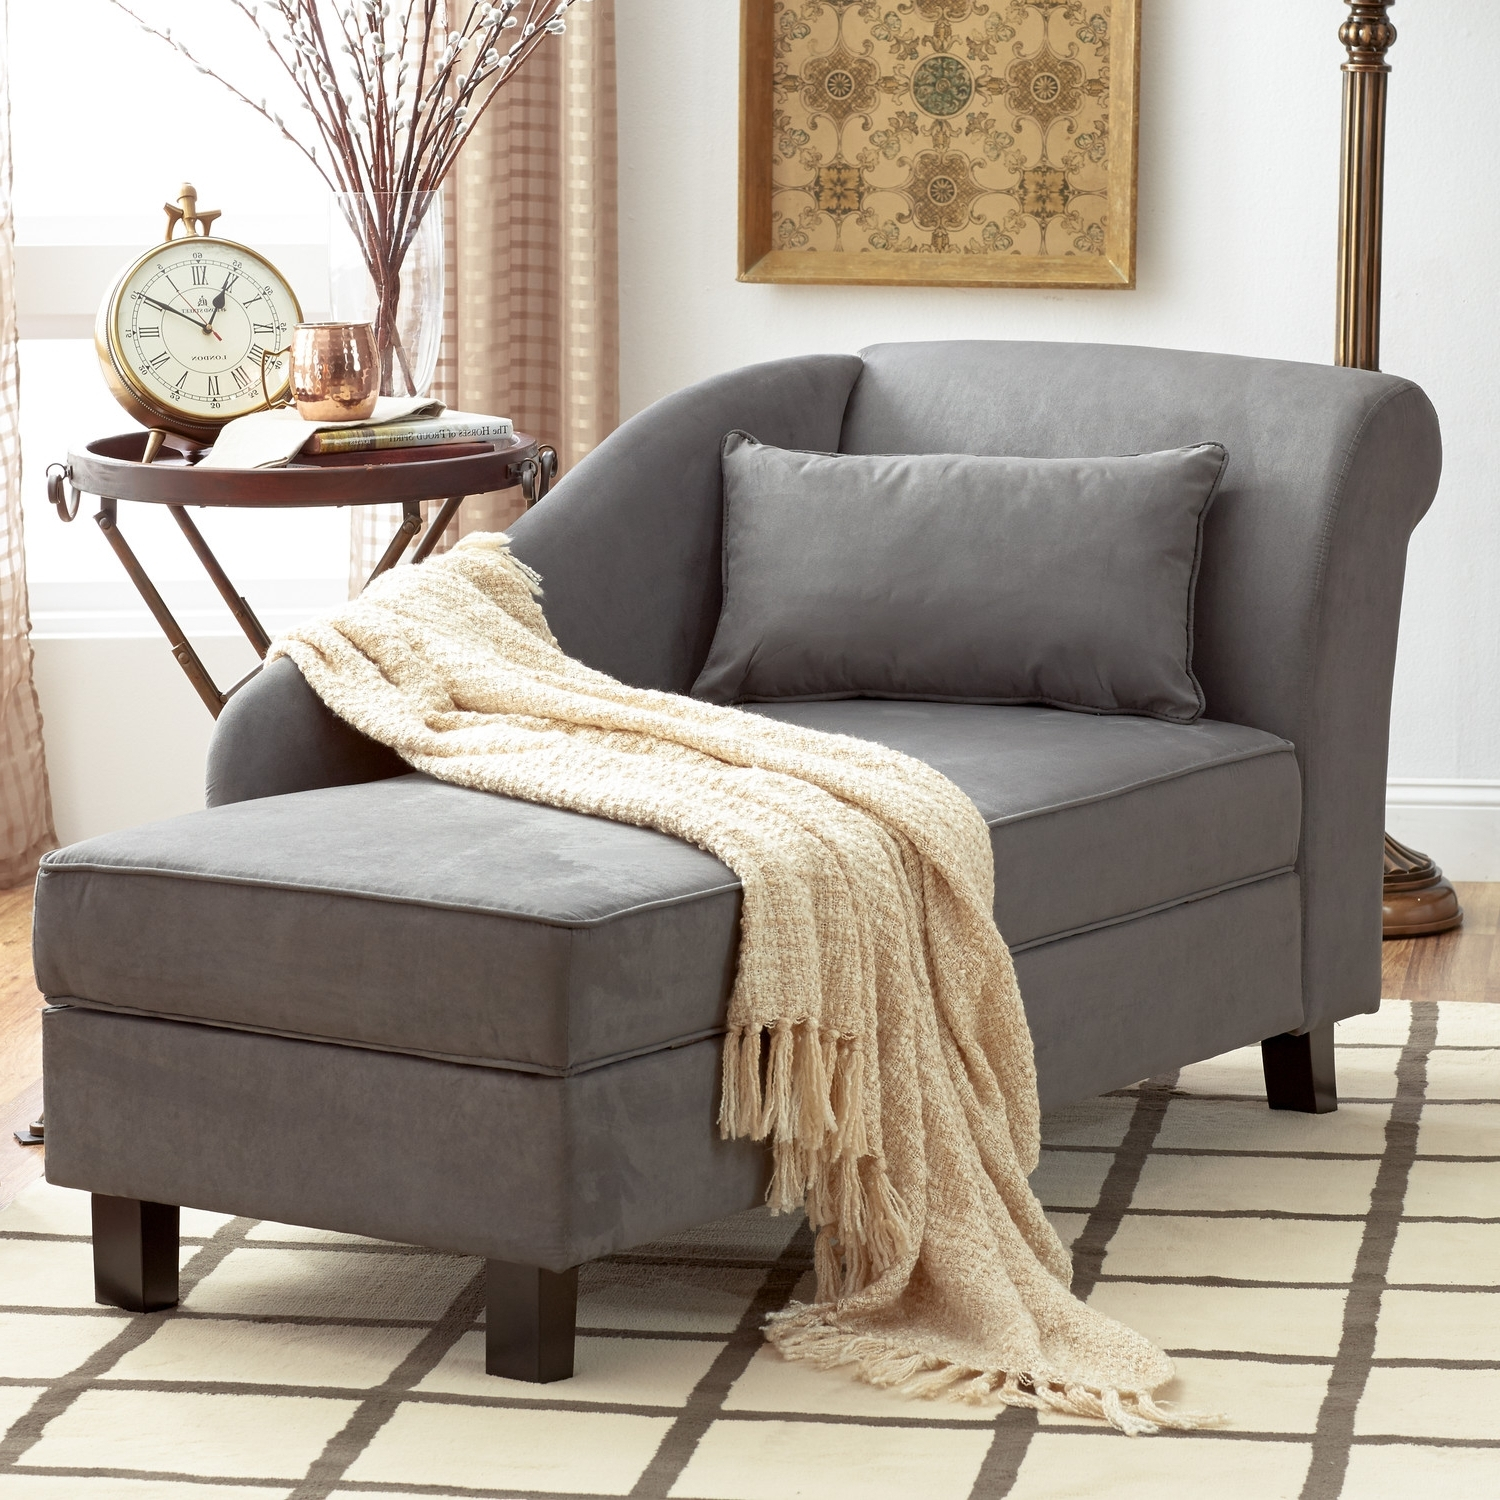 Small Chaise Lounge Chair For Bedroom U2022 Lounge Chairs Ideas Throughout Most  Popular Small Chaise Lounge